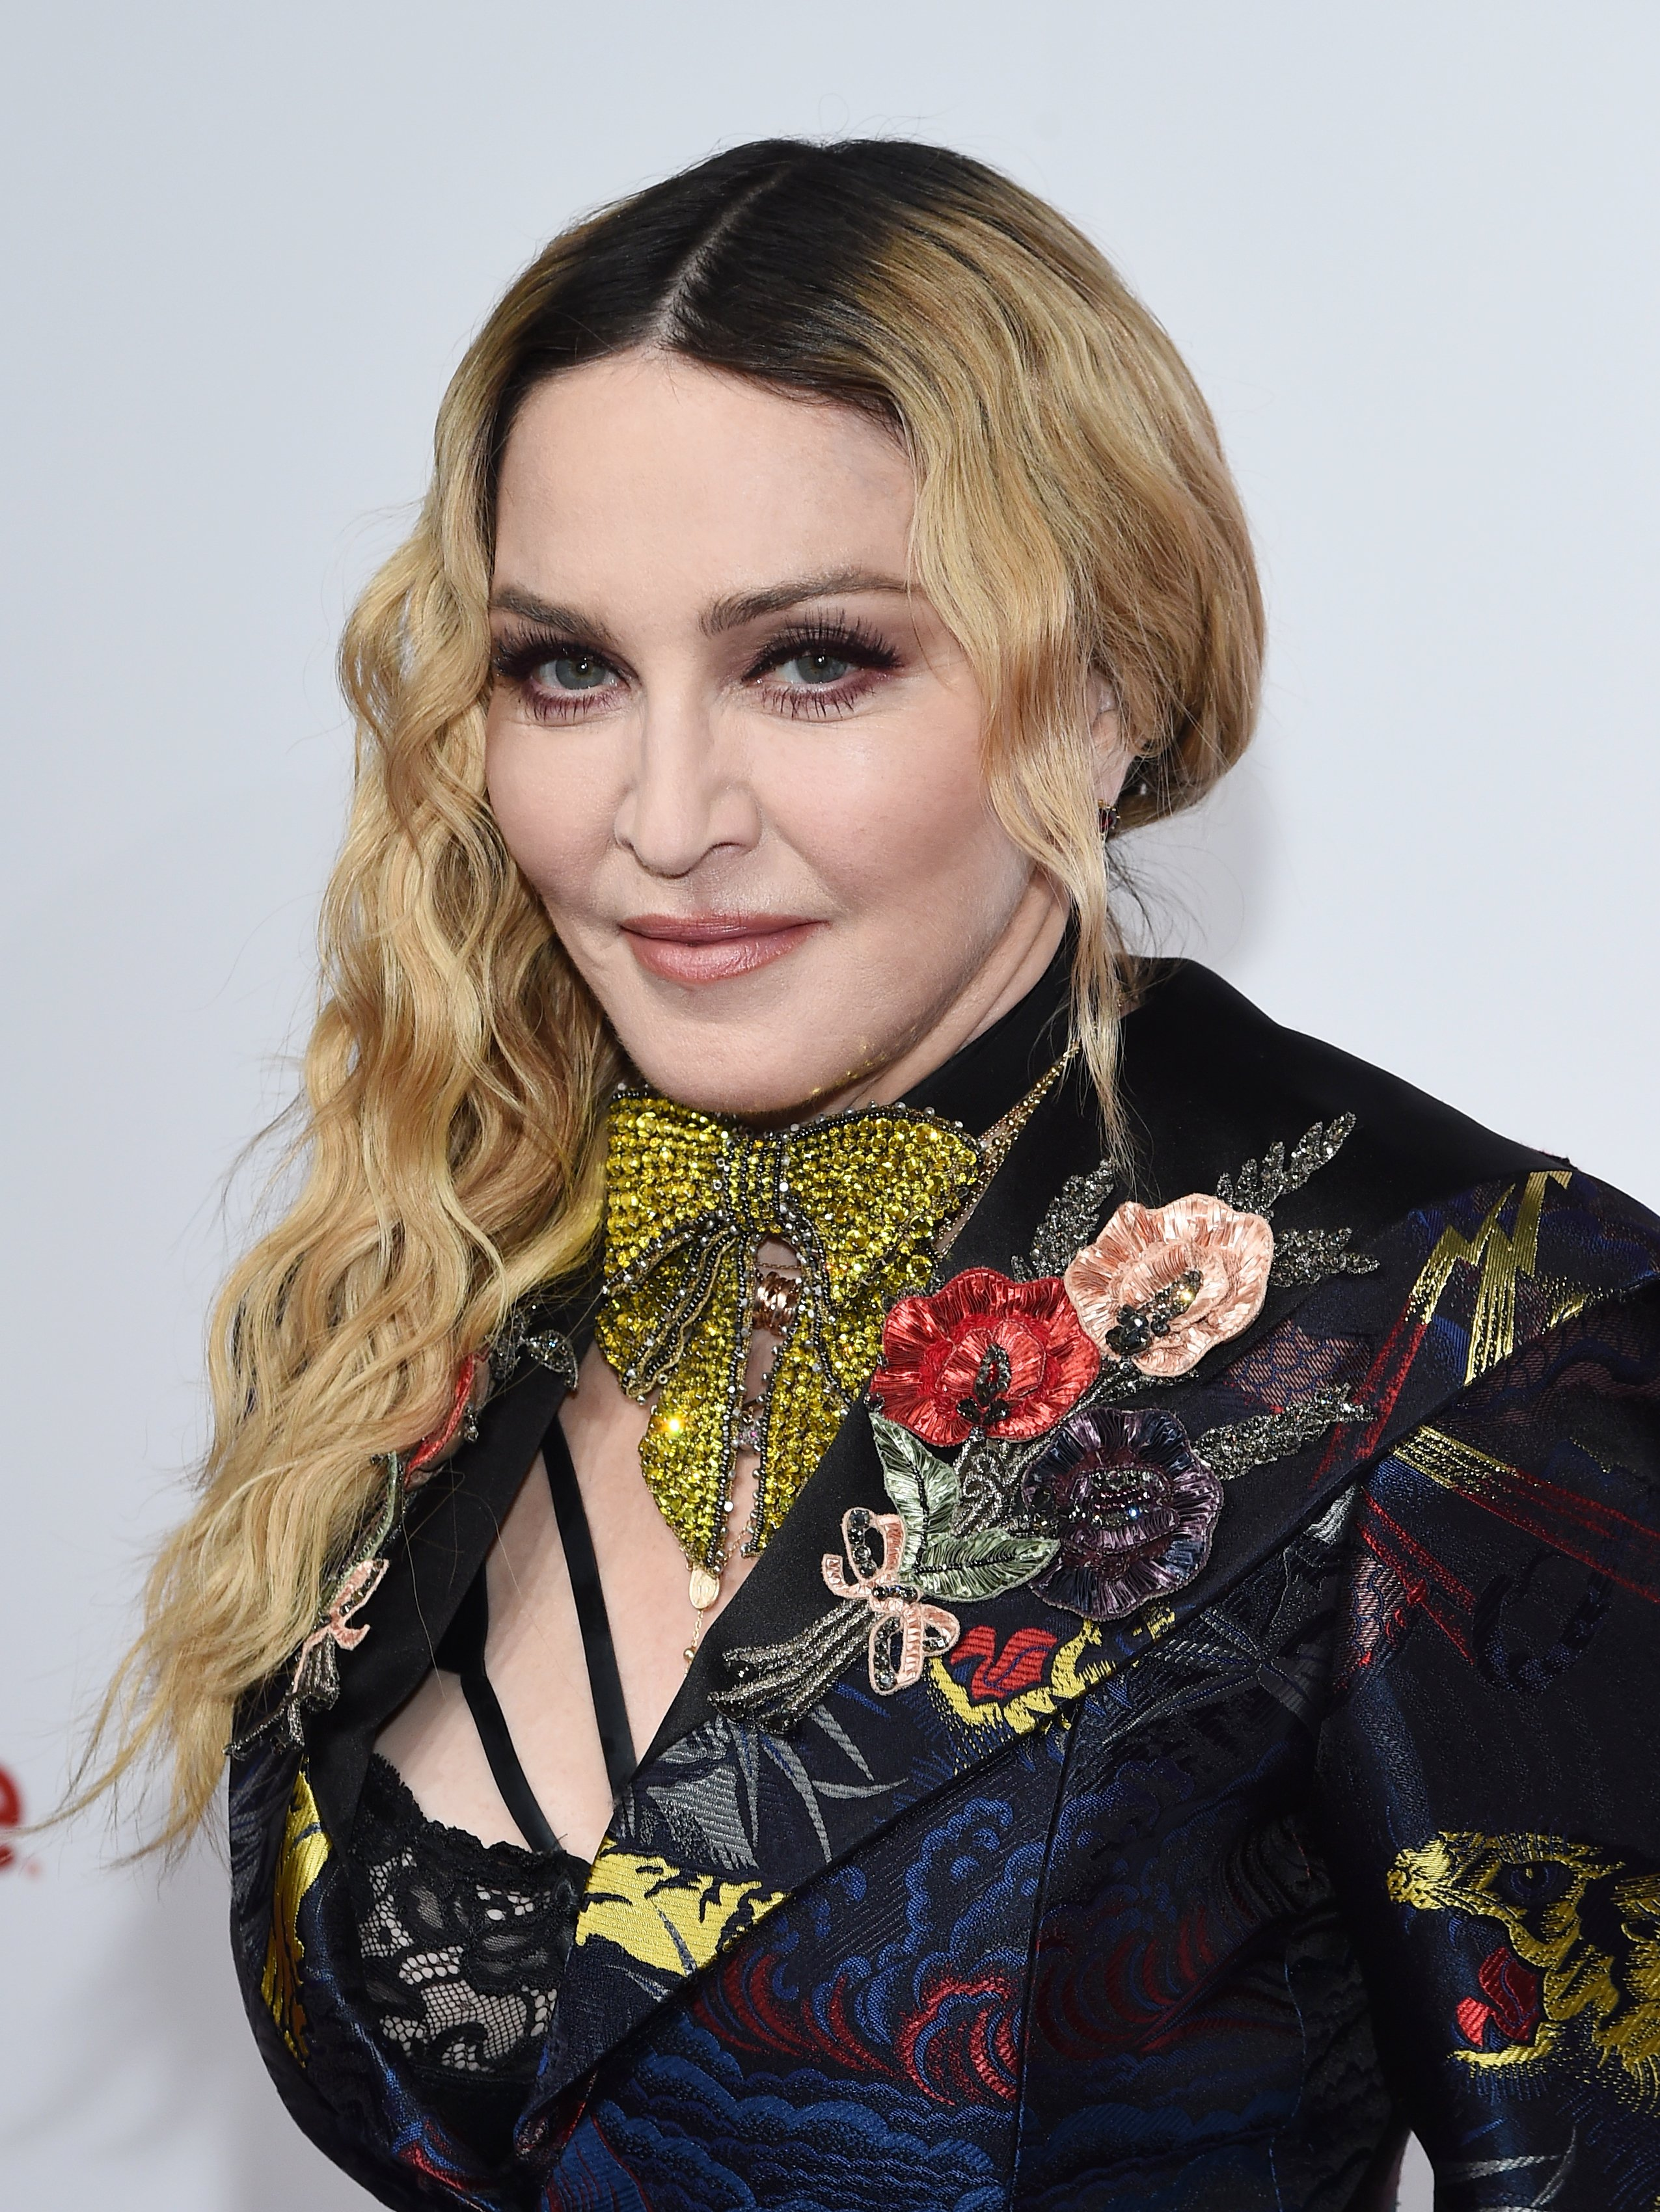 Madonna attending the 2016 Billboard Women in Music awards show. | Photo: Getty Images